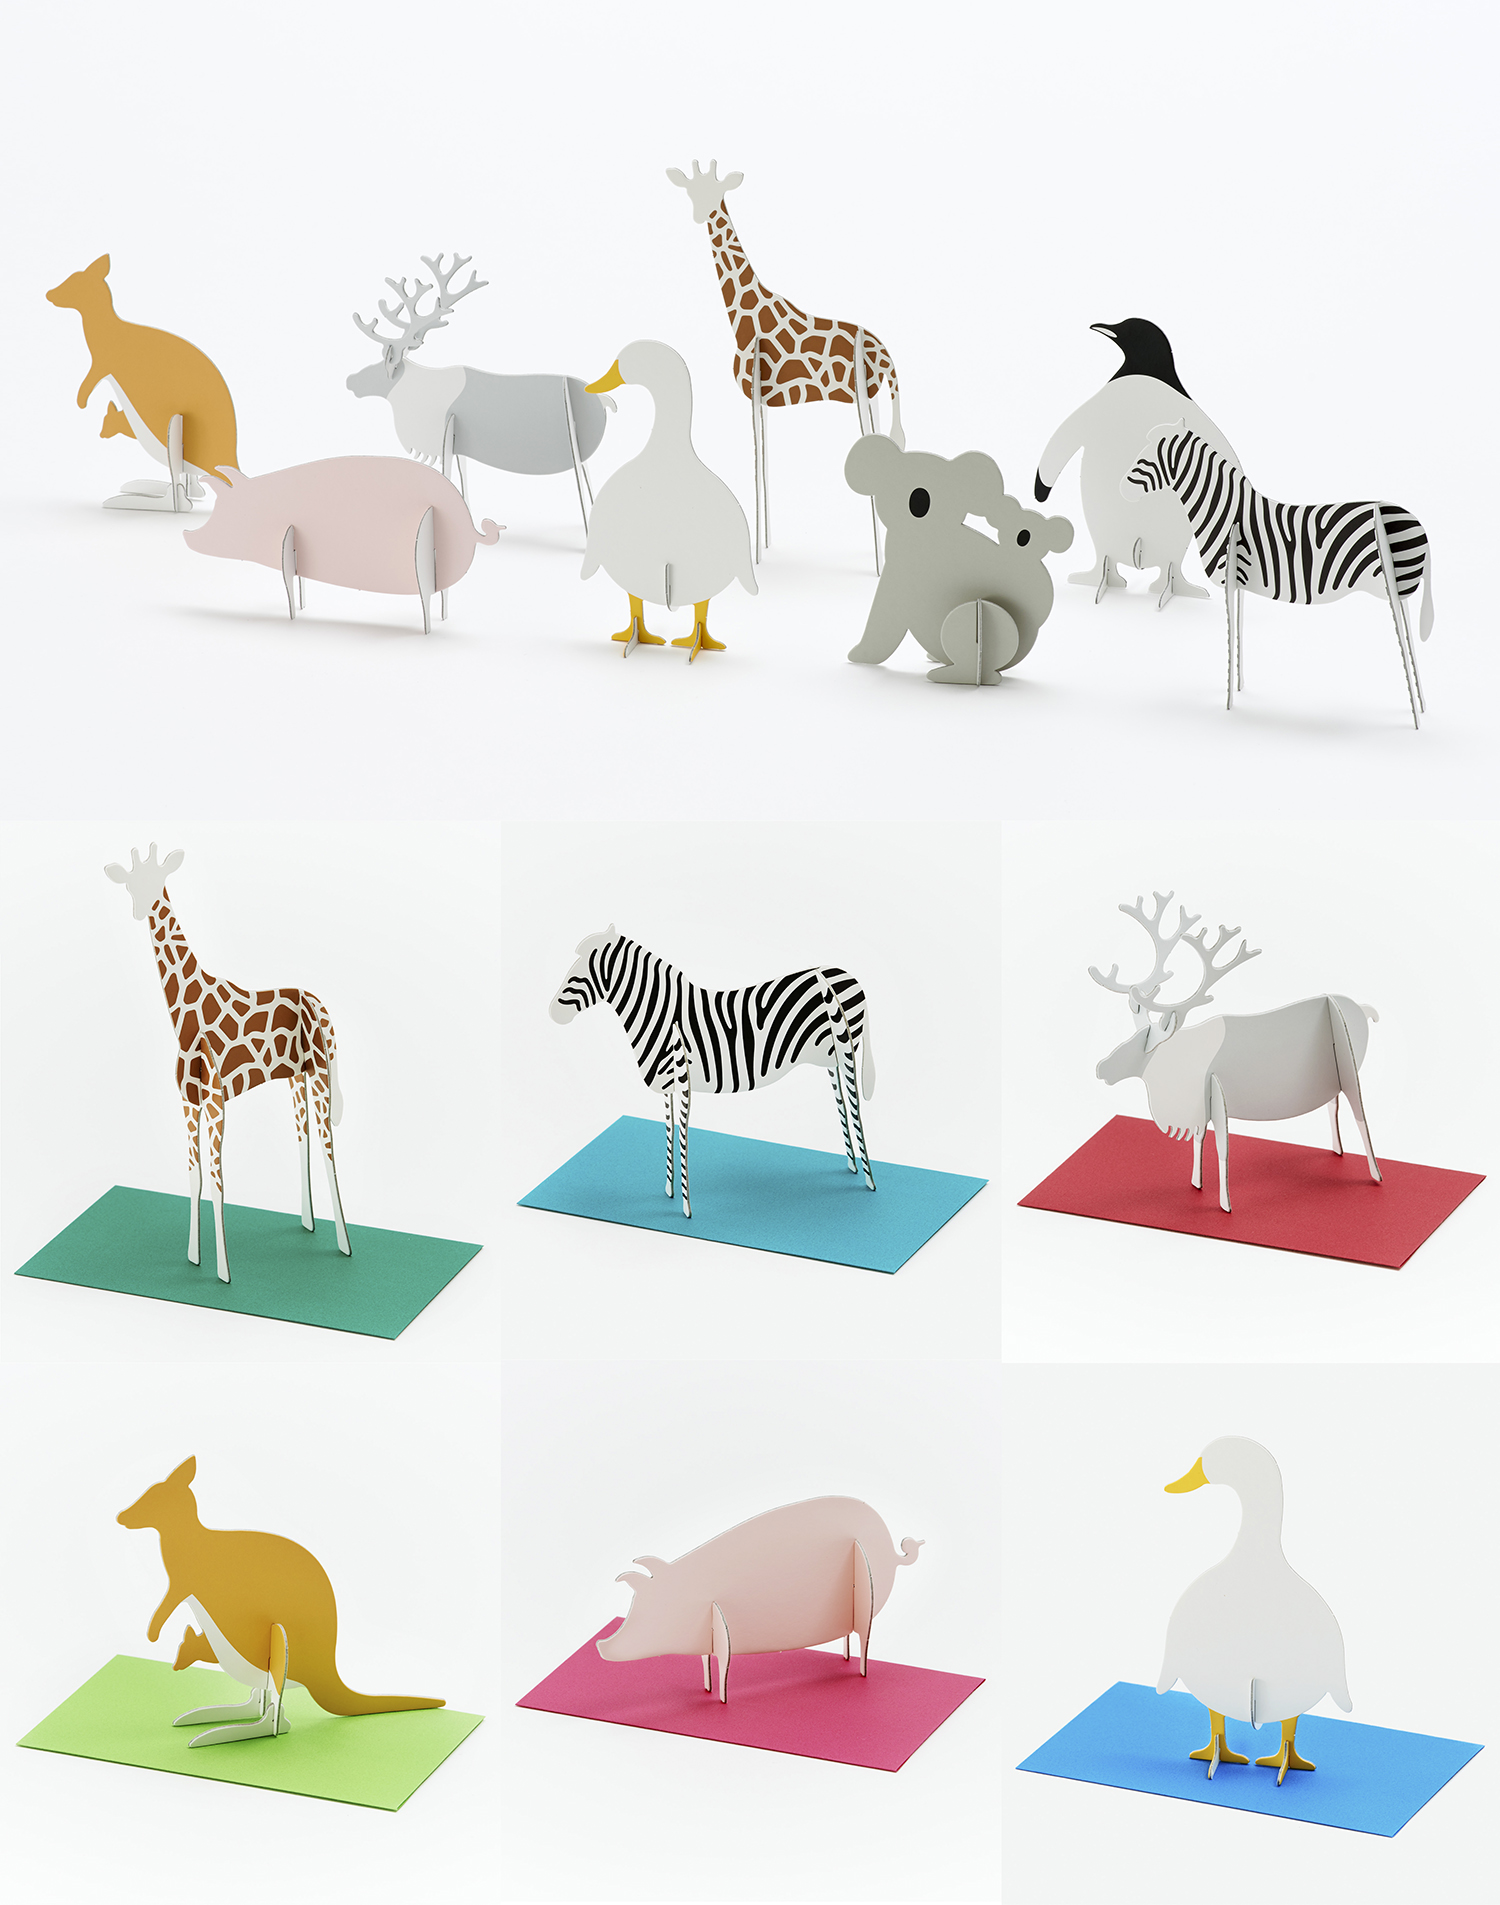 Curator: a greeting card that will surely bring a smile to your loved ones. - An animal paper kit to carry your important message. Write a message on the body and send the part in an envelope. It is a fun message card that the recipient can assemble and decorate.